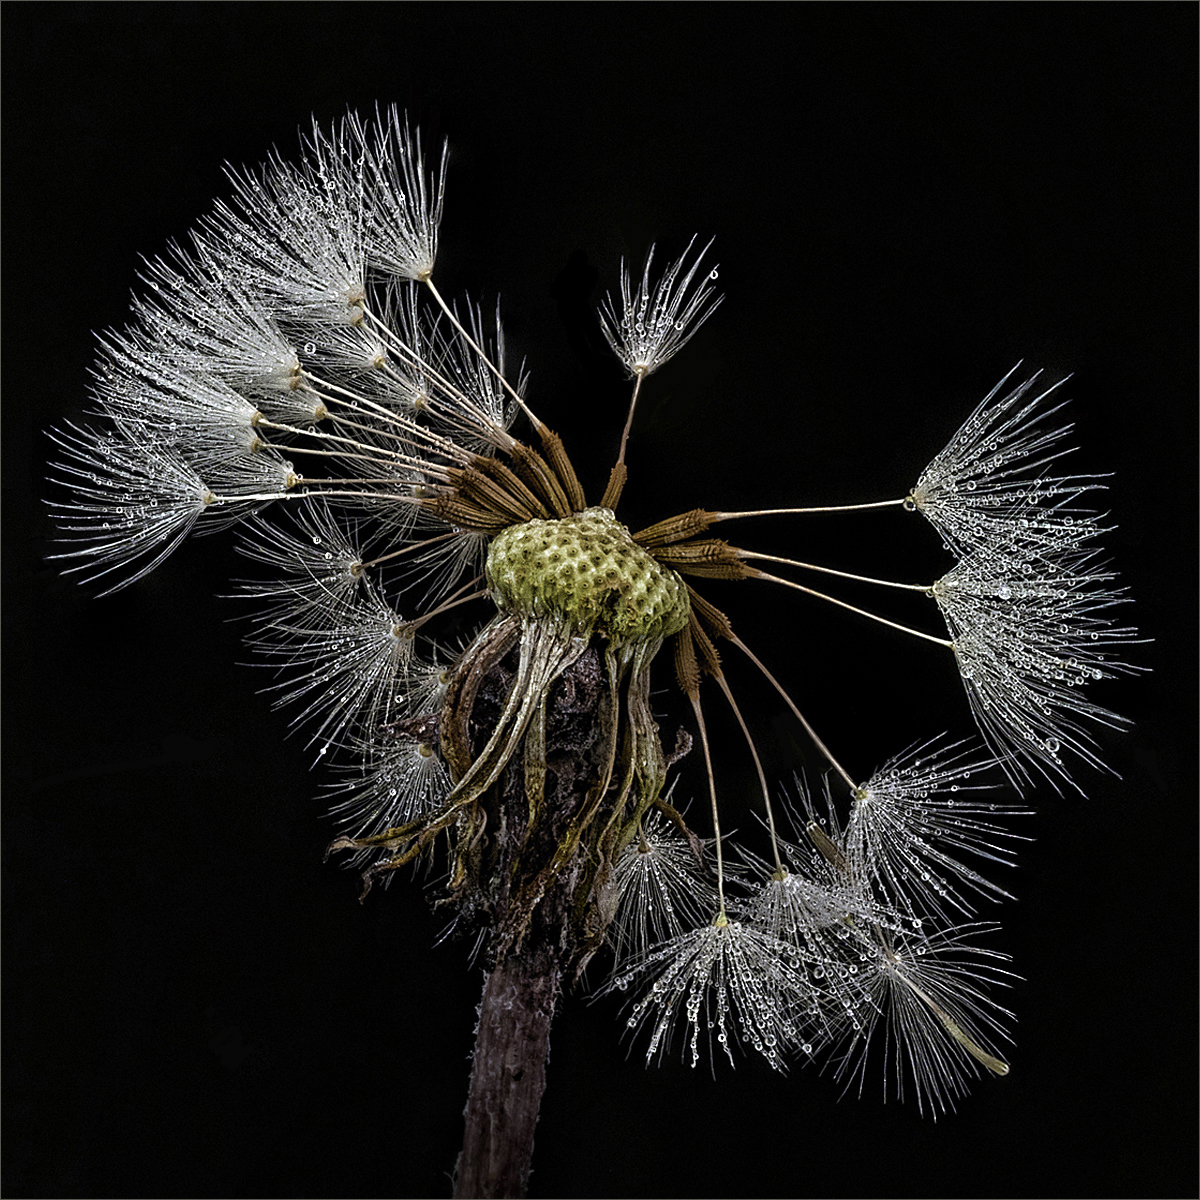 <h5>Just Dandy</h5><p>By Tony Perryman</p>